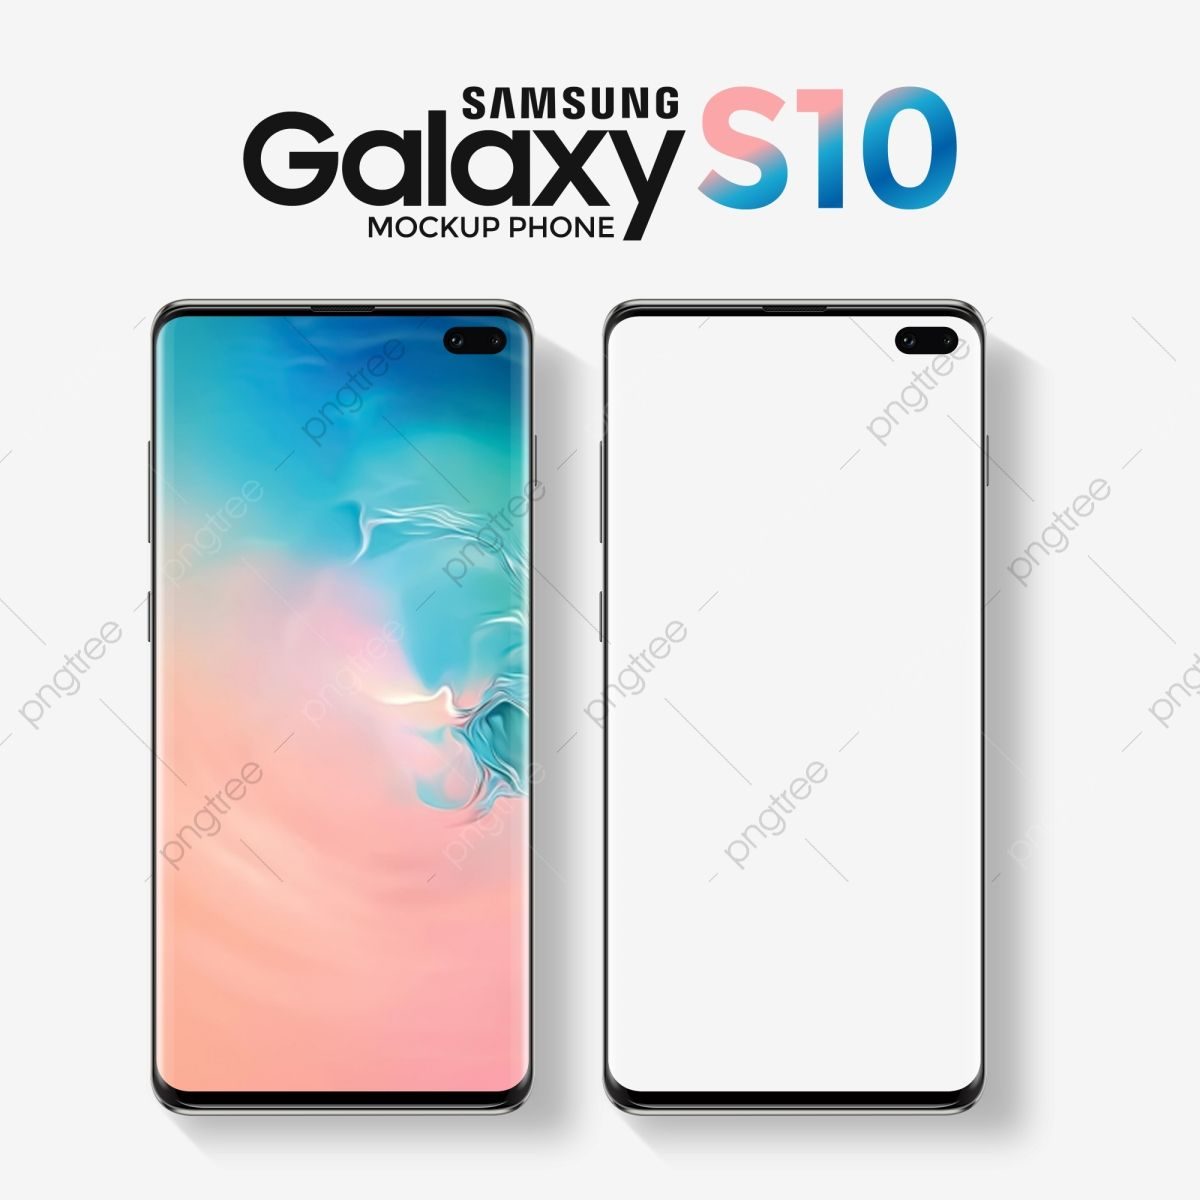 Samsung Galaxy S10 Mockup With Transparent Background Phone Smartphone Hand Png Transparent Clipart Image And Psd File For Free Download Samsung Galaxy Samsung Gadgets Technology Background